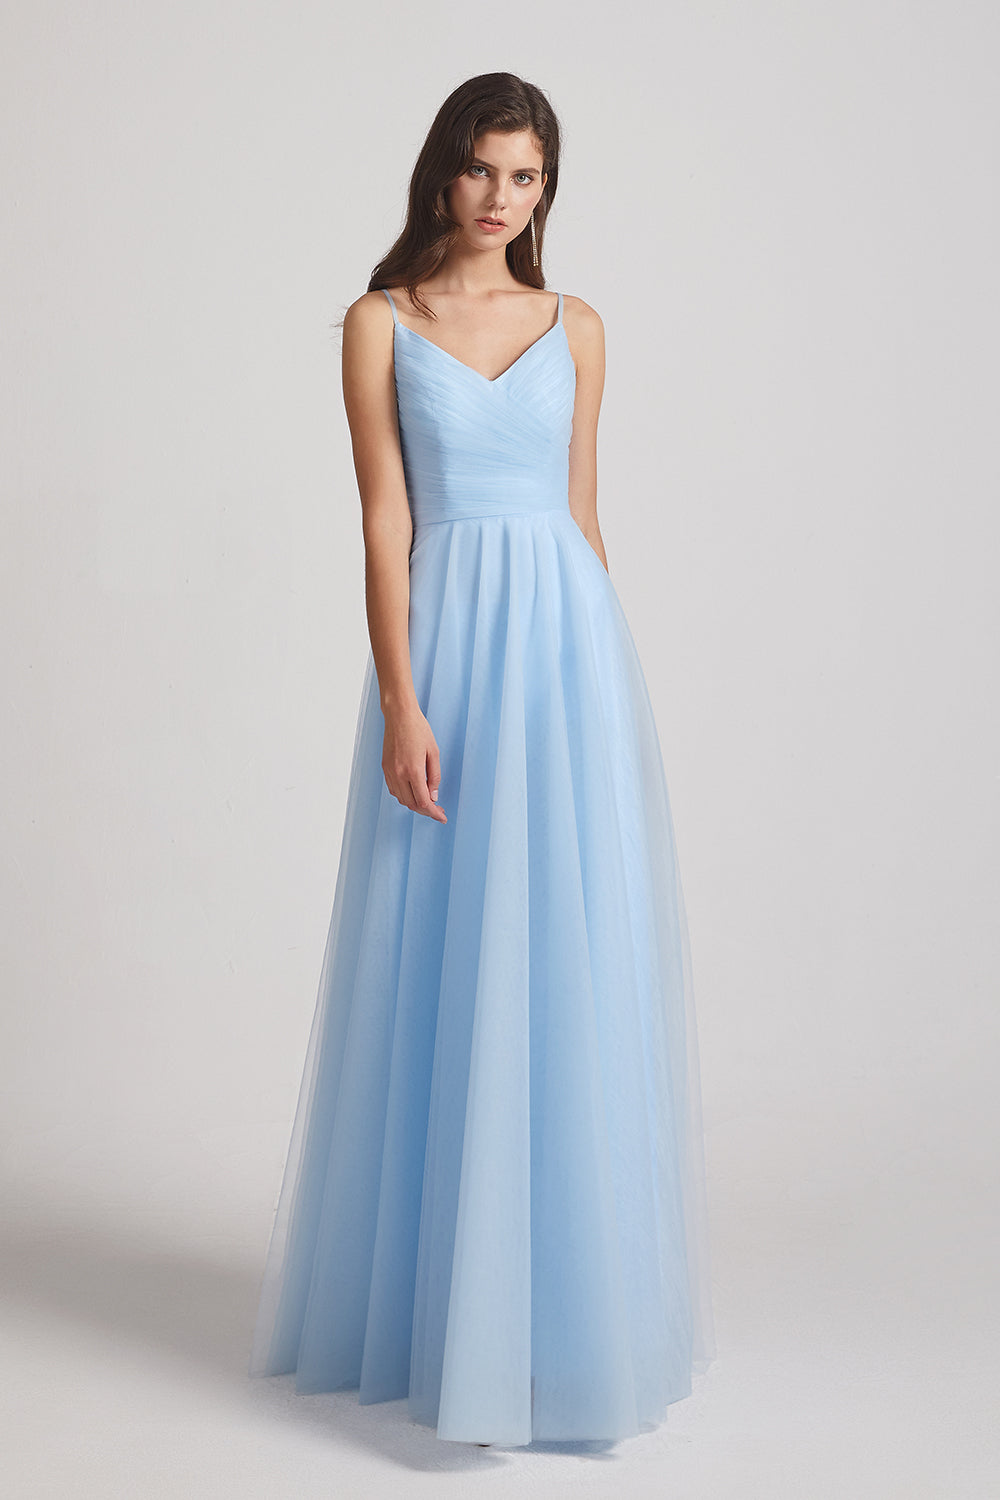 v-neck ruched blue maids of honor dress